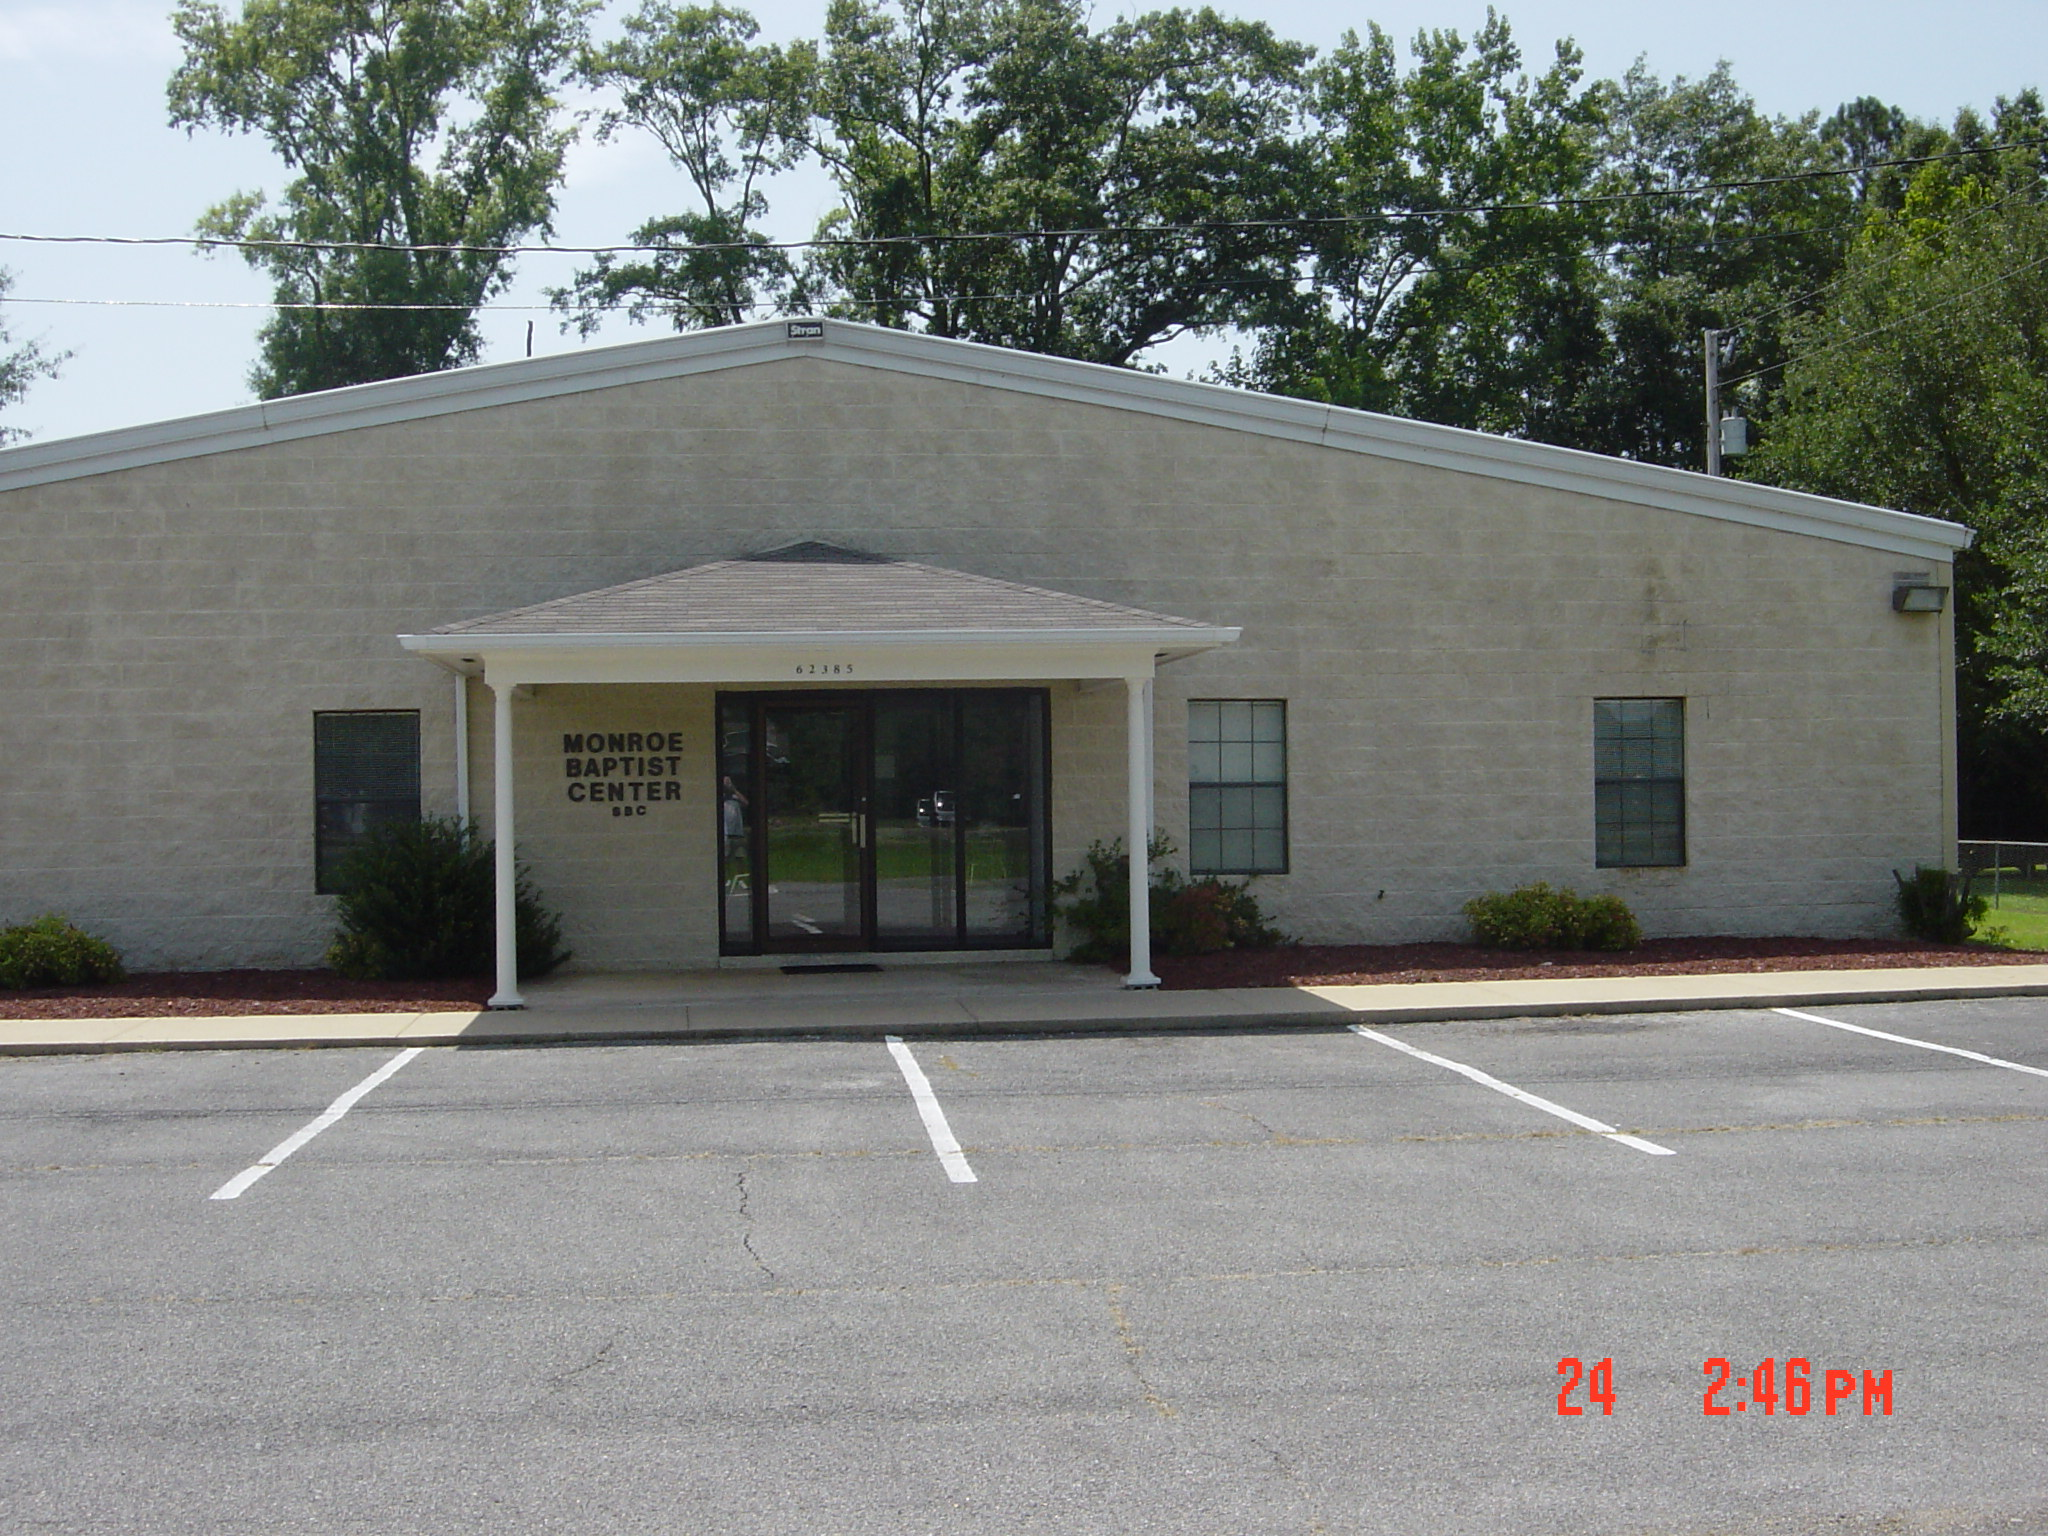 Mississippi monroe county becker - We Are An Association Of Southern Baptist Churches In Monroe County Mississippi It Is Our Purpose To Promote And Assist Our Churches In Proclaiming The